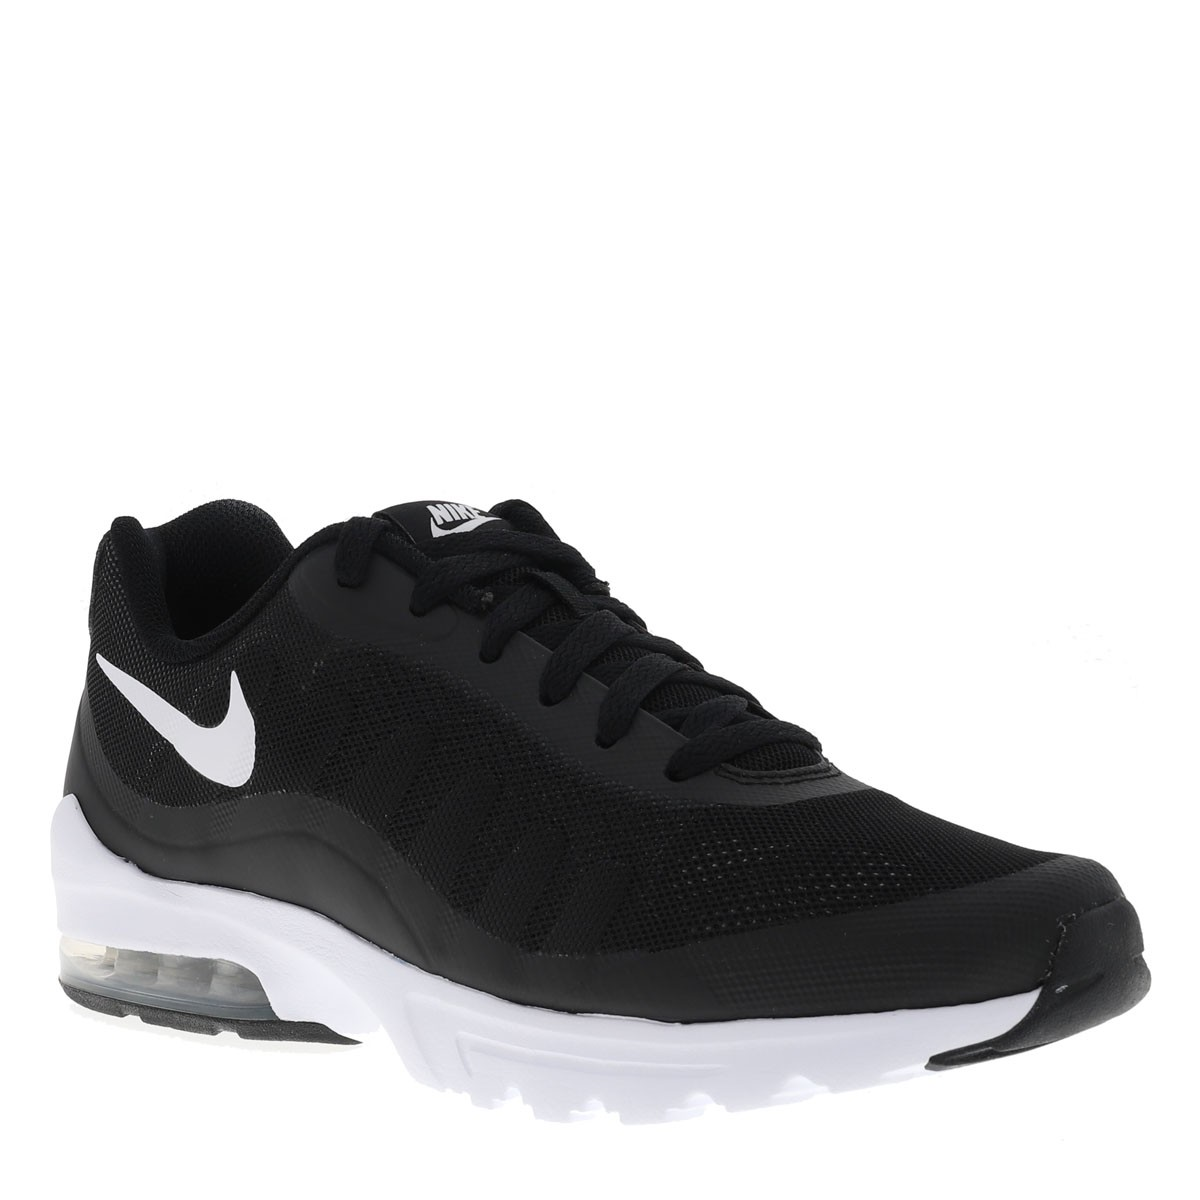 49583dfc5fc5 Baskets Air Max Invigor homme noir Nike- CCV Mode